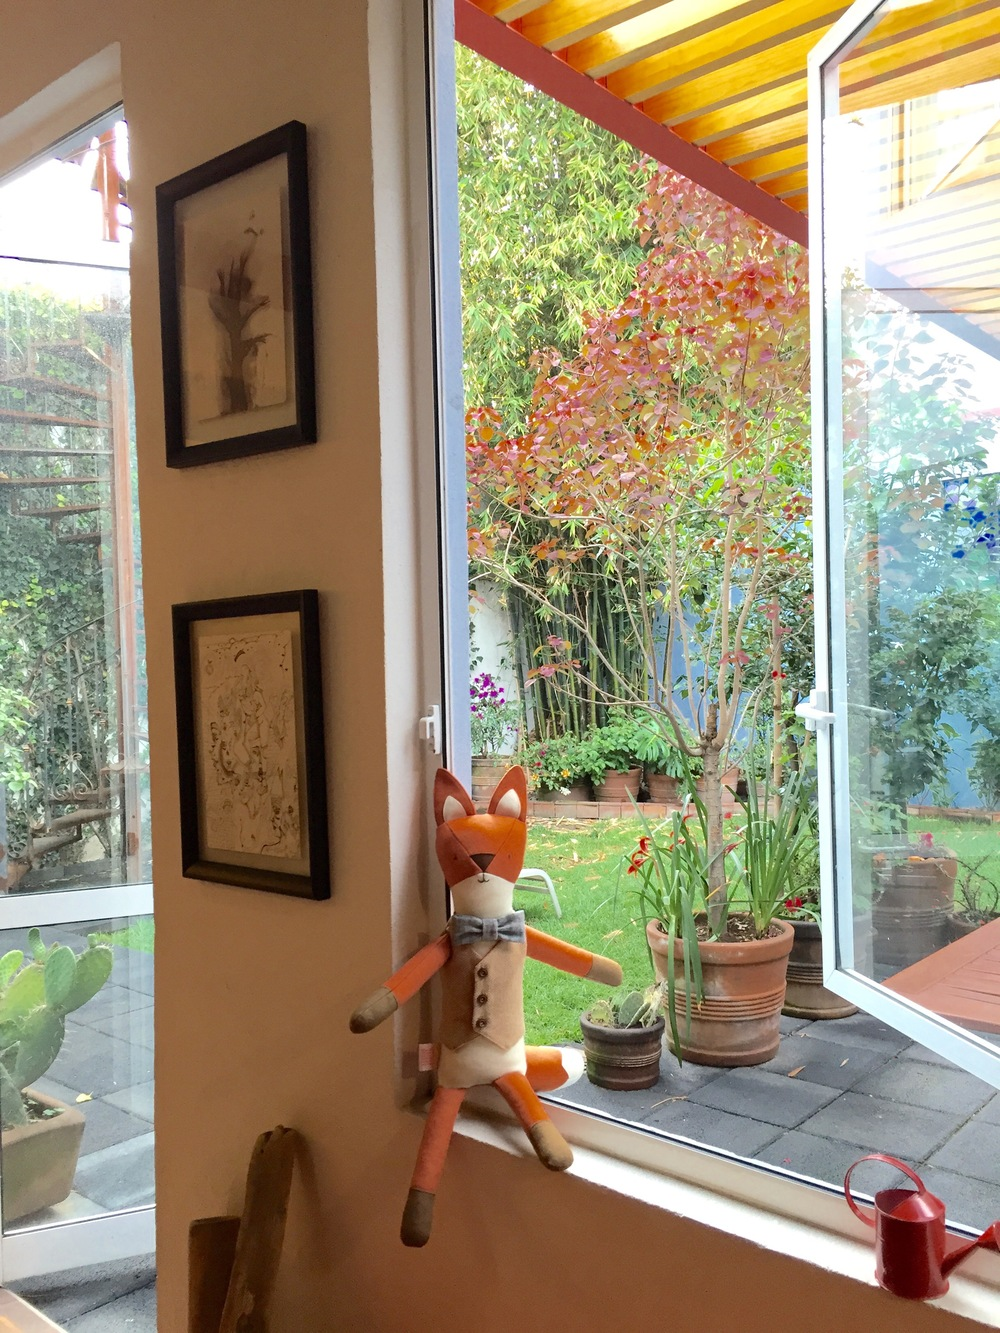 Henry the Fox enjoying fresh morning air